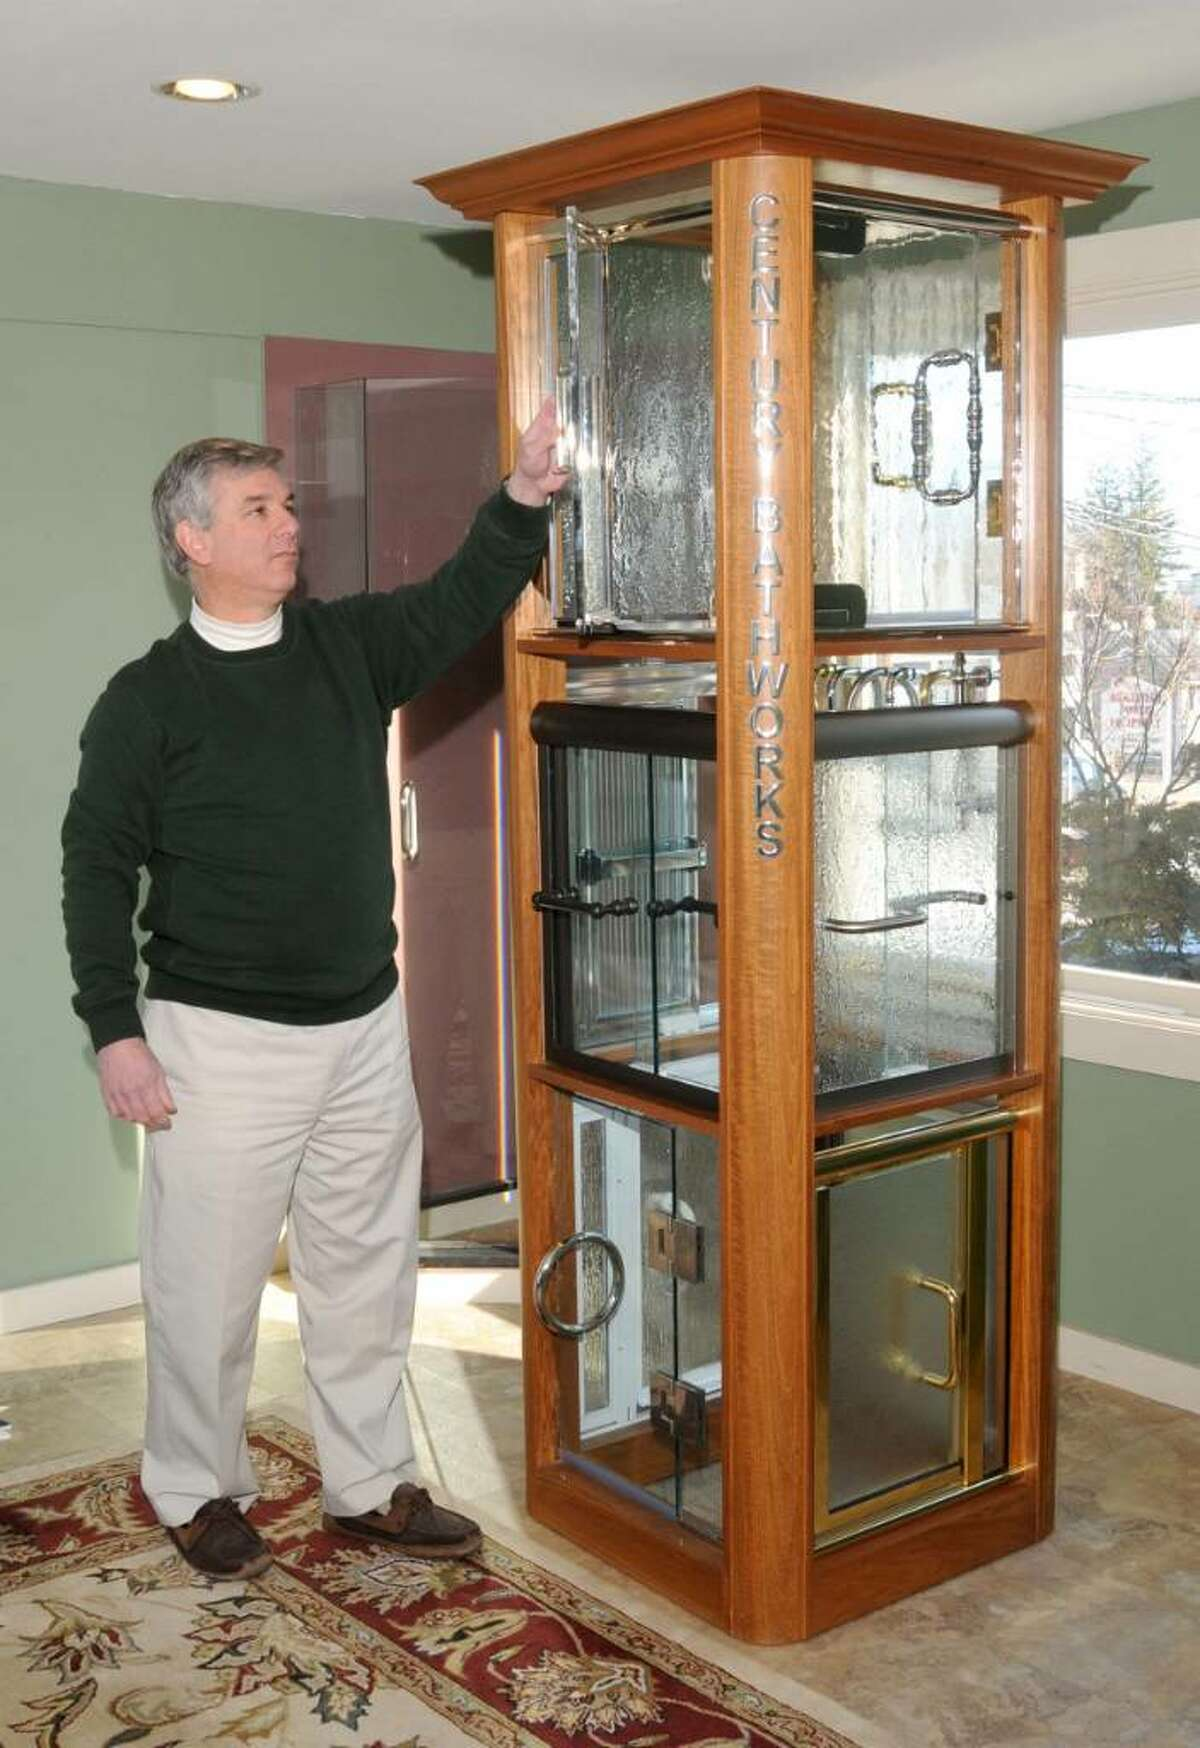 John Petchonka, co-owner of Ridgefield Glass, shows shower enclousure choices from the frame shower display,in the company's showroom at 4 Danbury Rd., Ridgefield, CT, on Tuesday, Feb.9, 2010